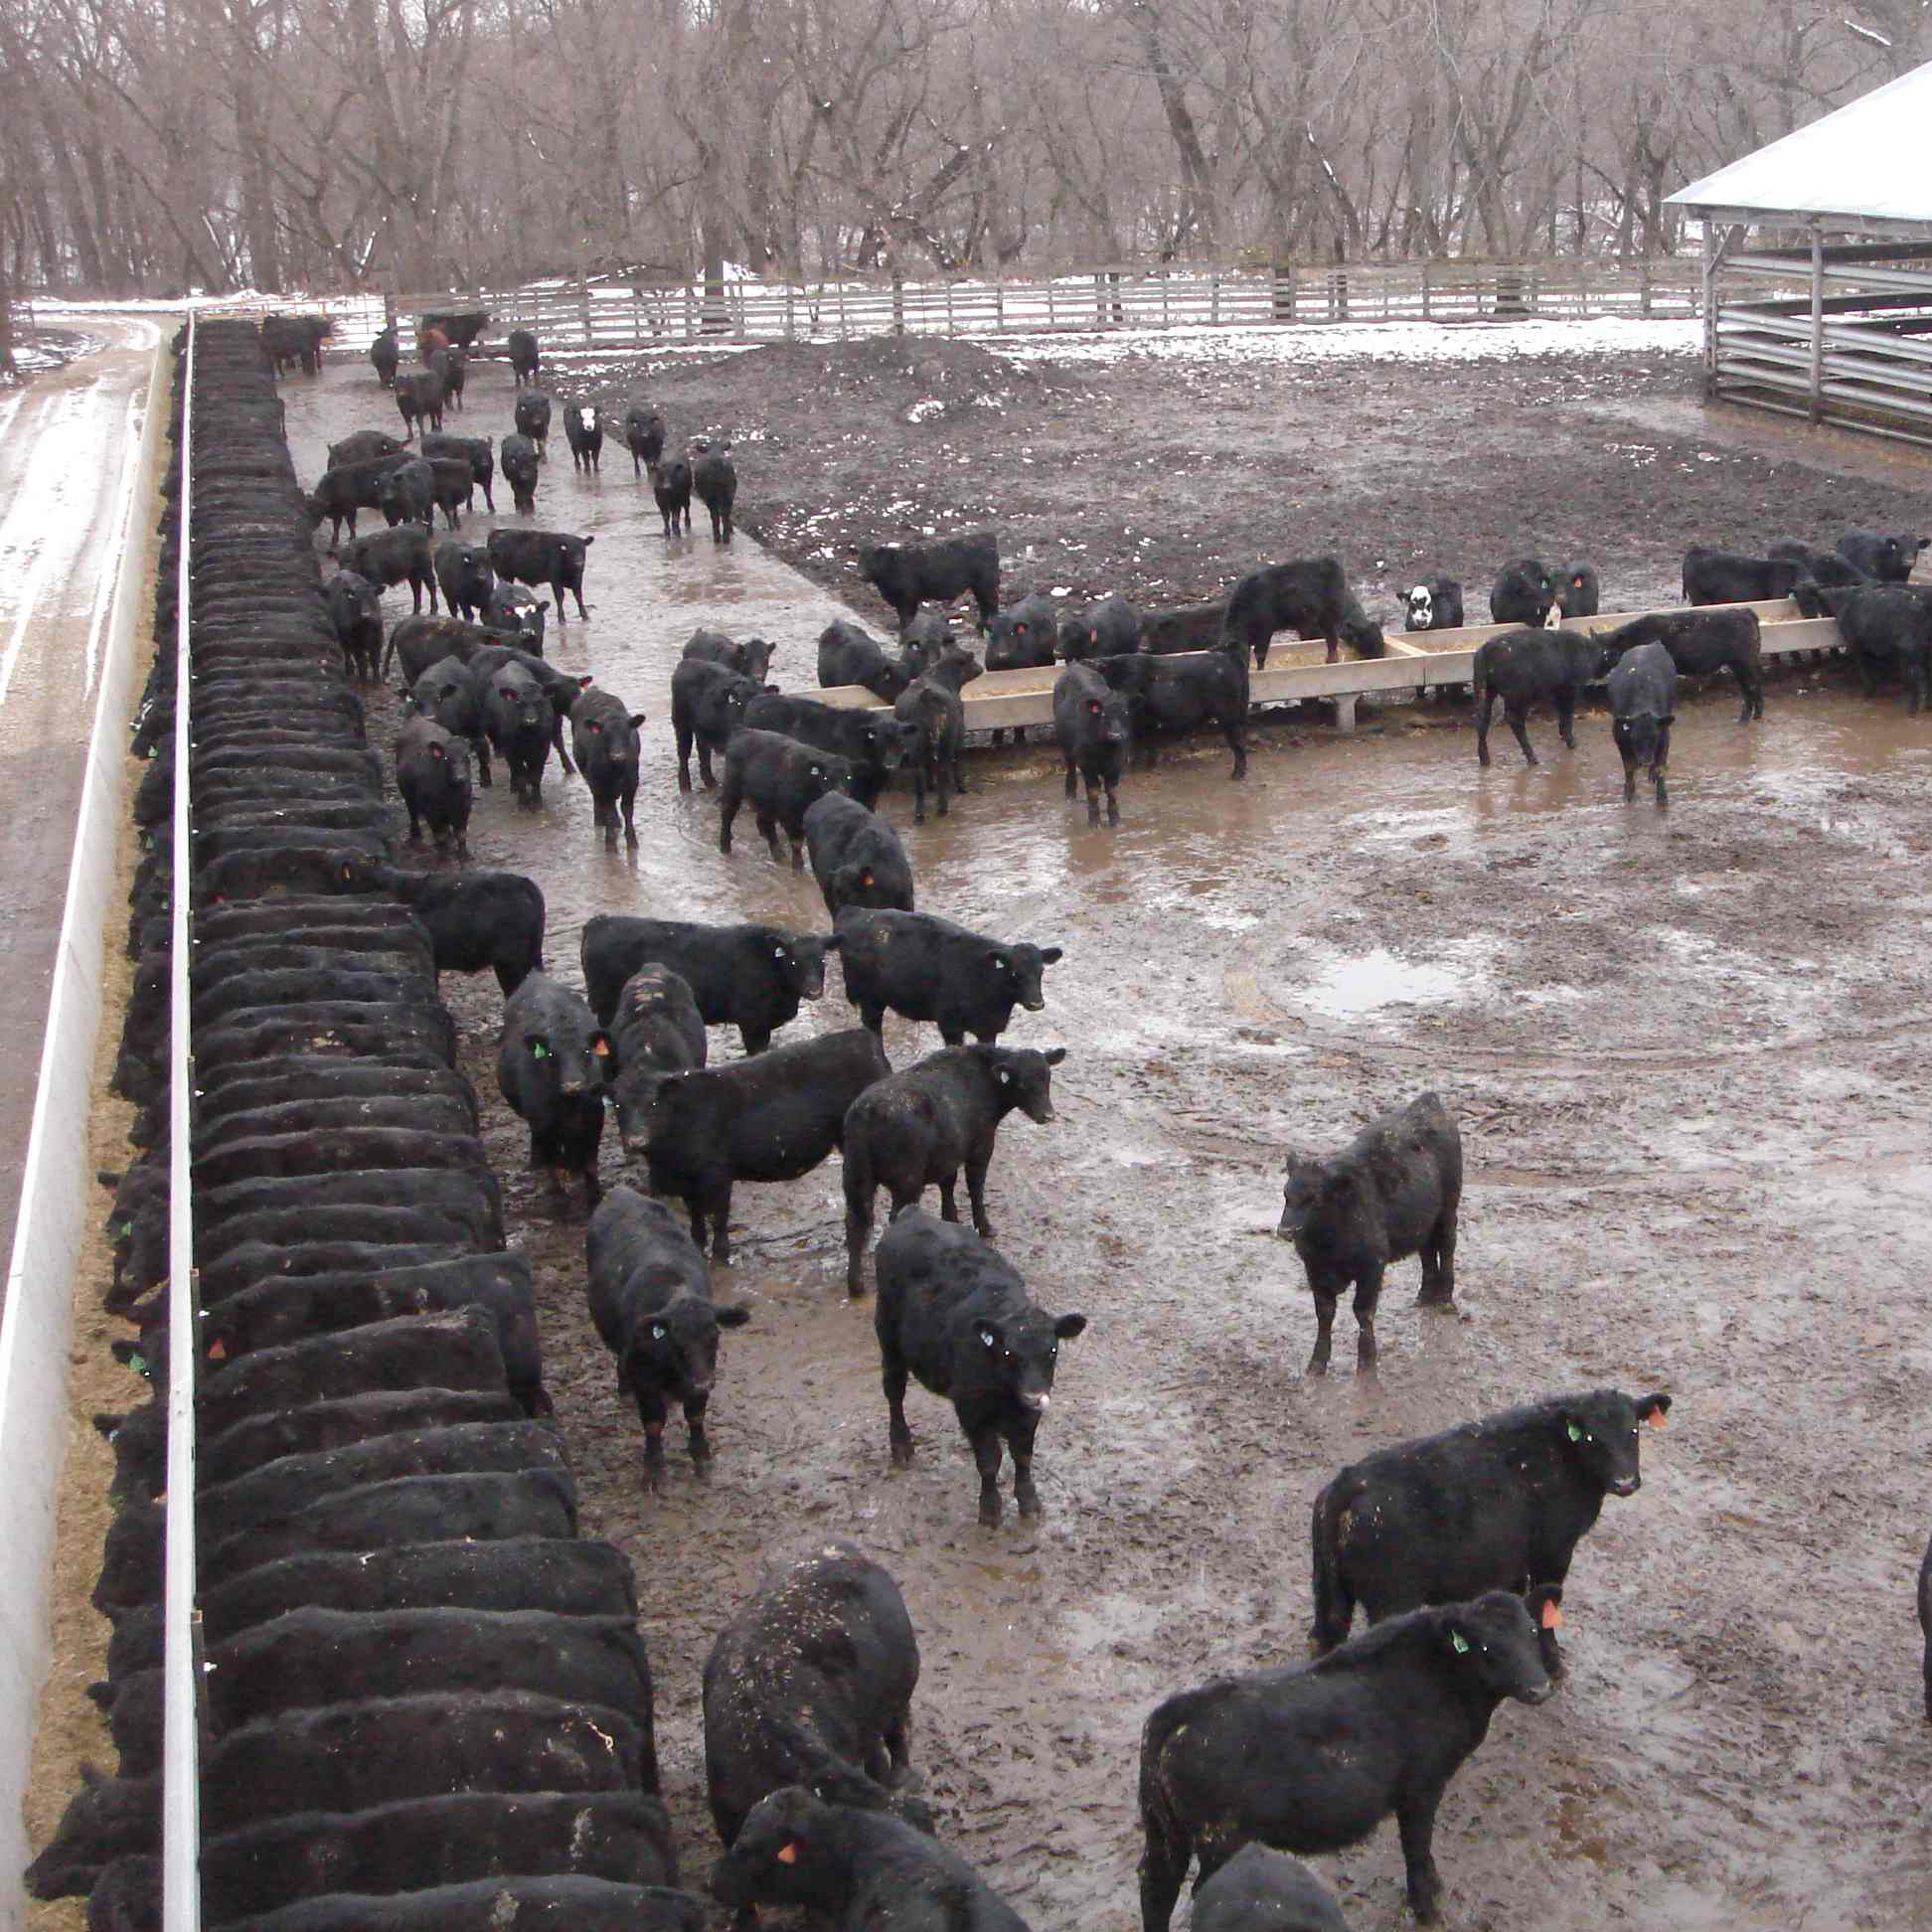 muddy, standing water, with cows standing in close quarters in a feeding lot